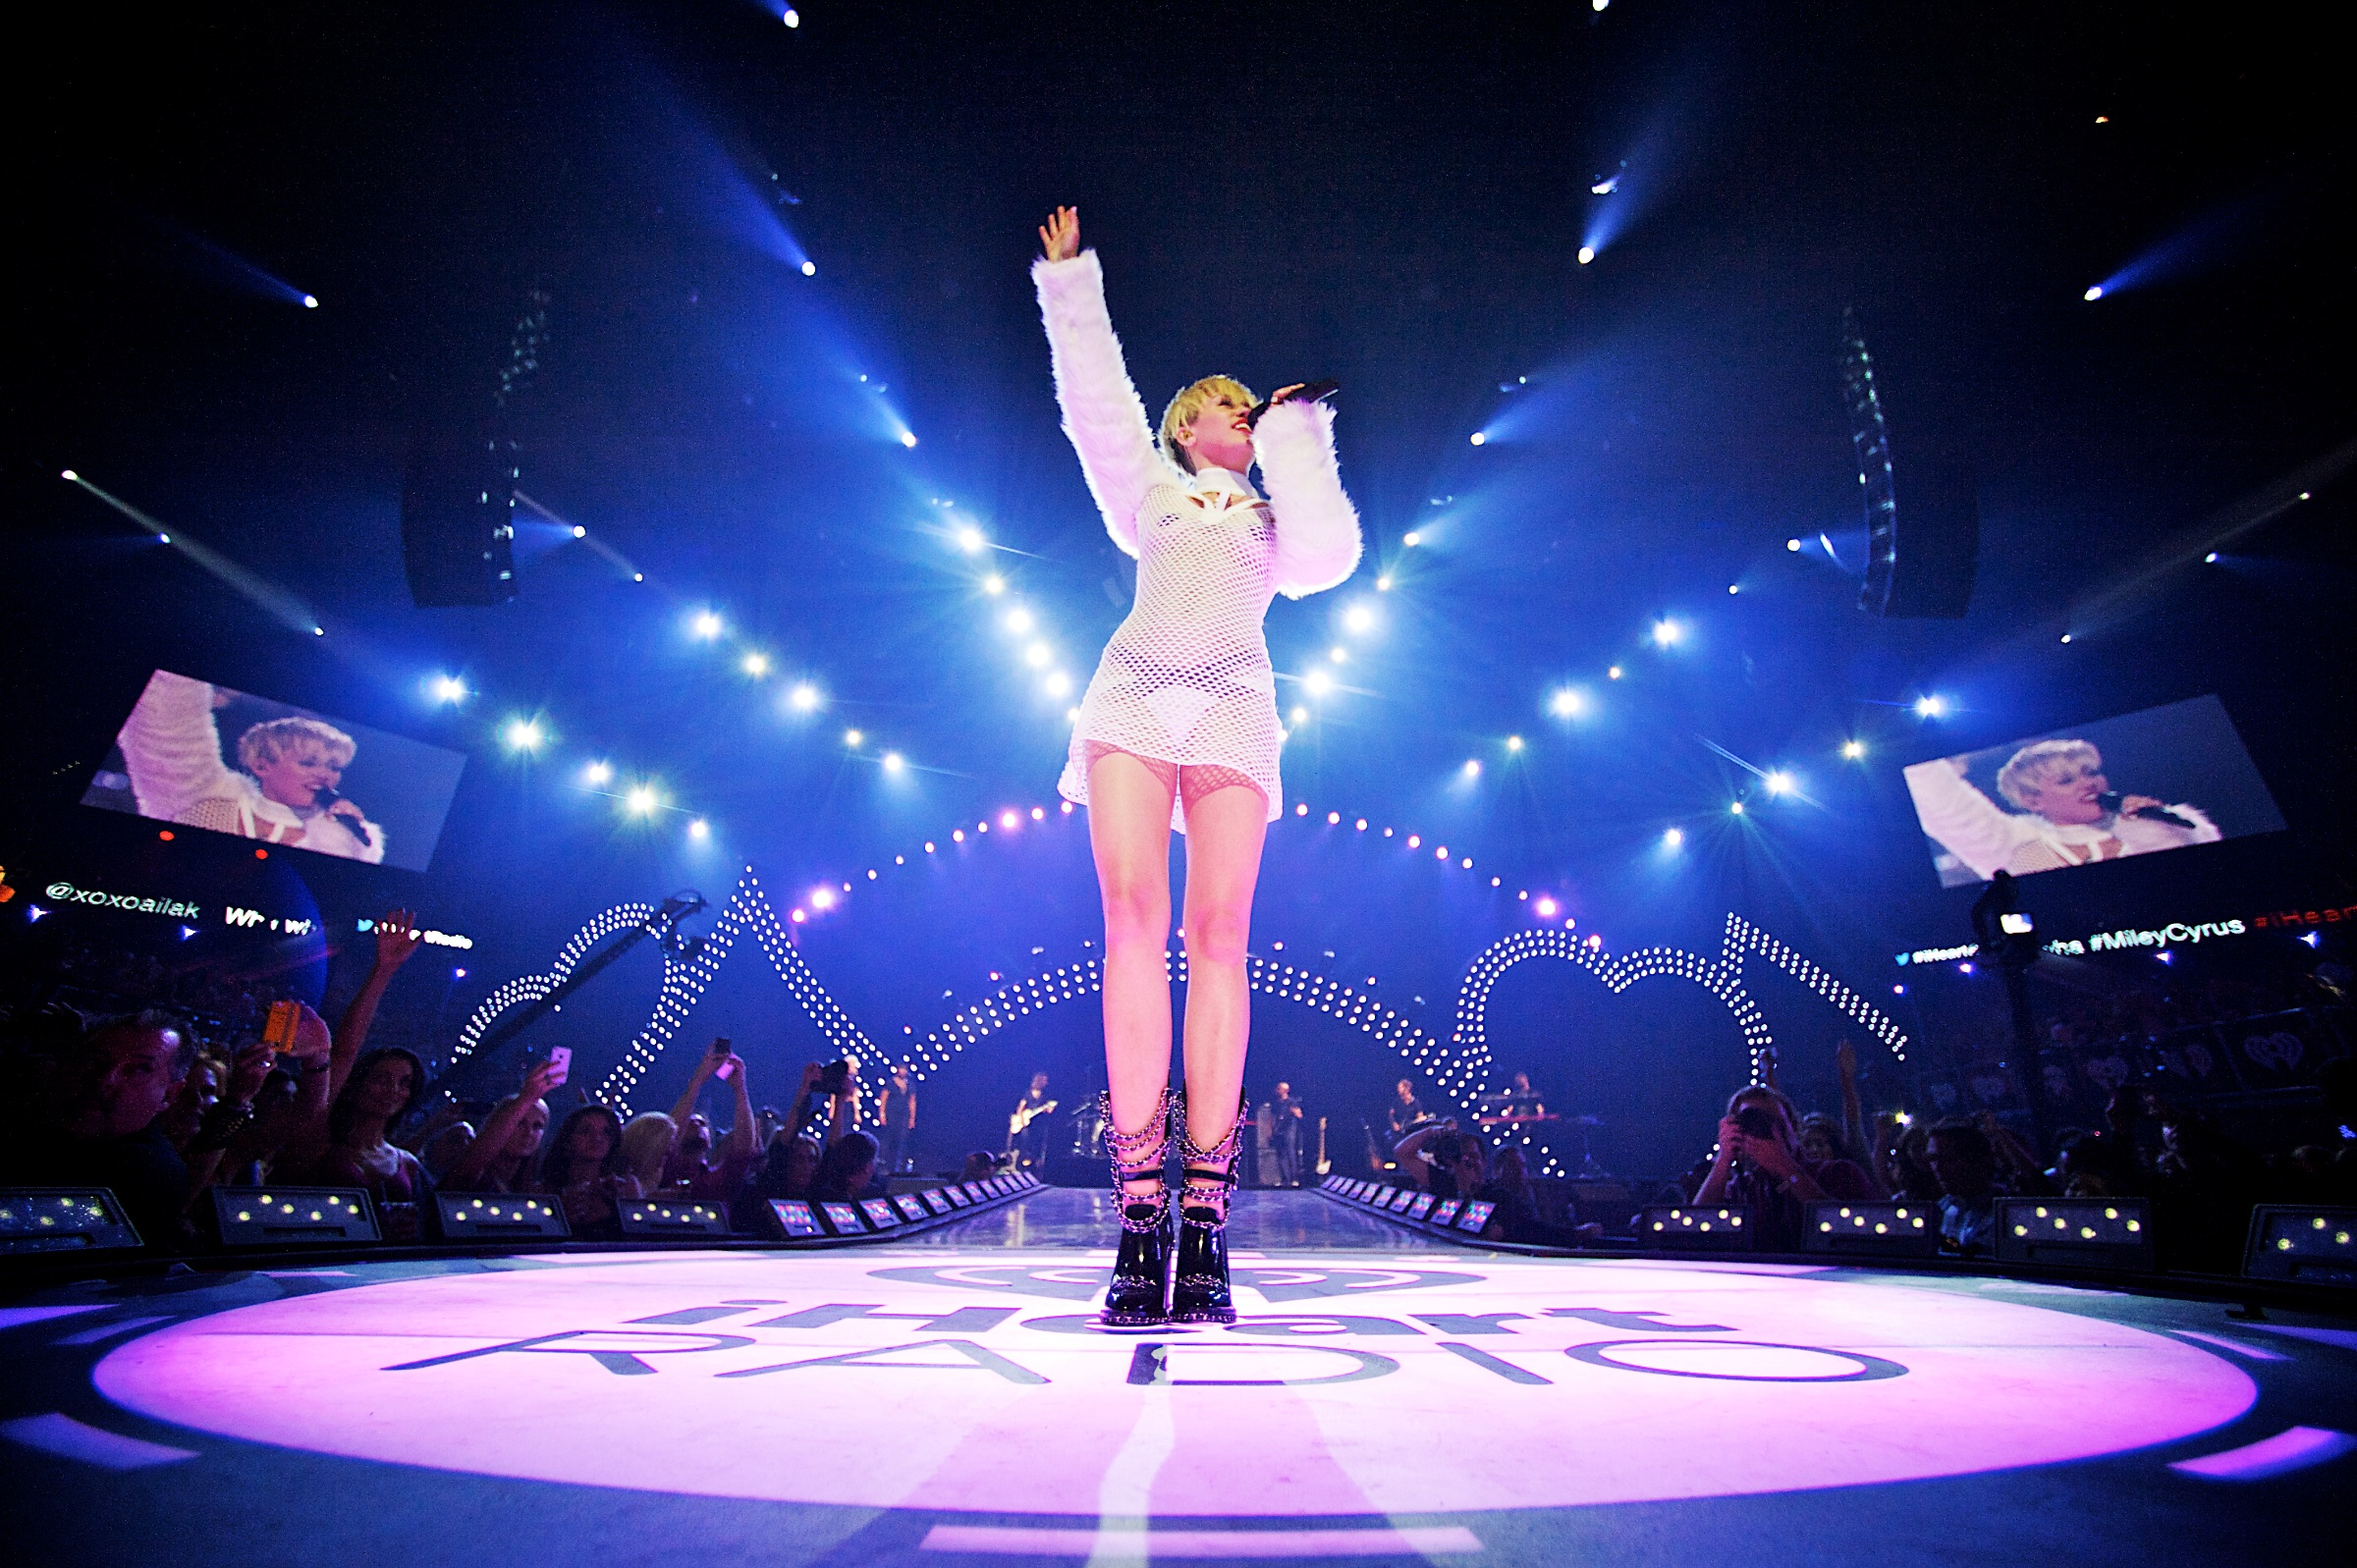 Miley Cyrus performs at the 2013 iHeartRadio Music Festival in Las Vegas, NV.